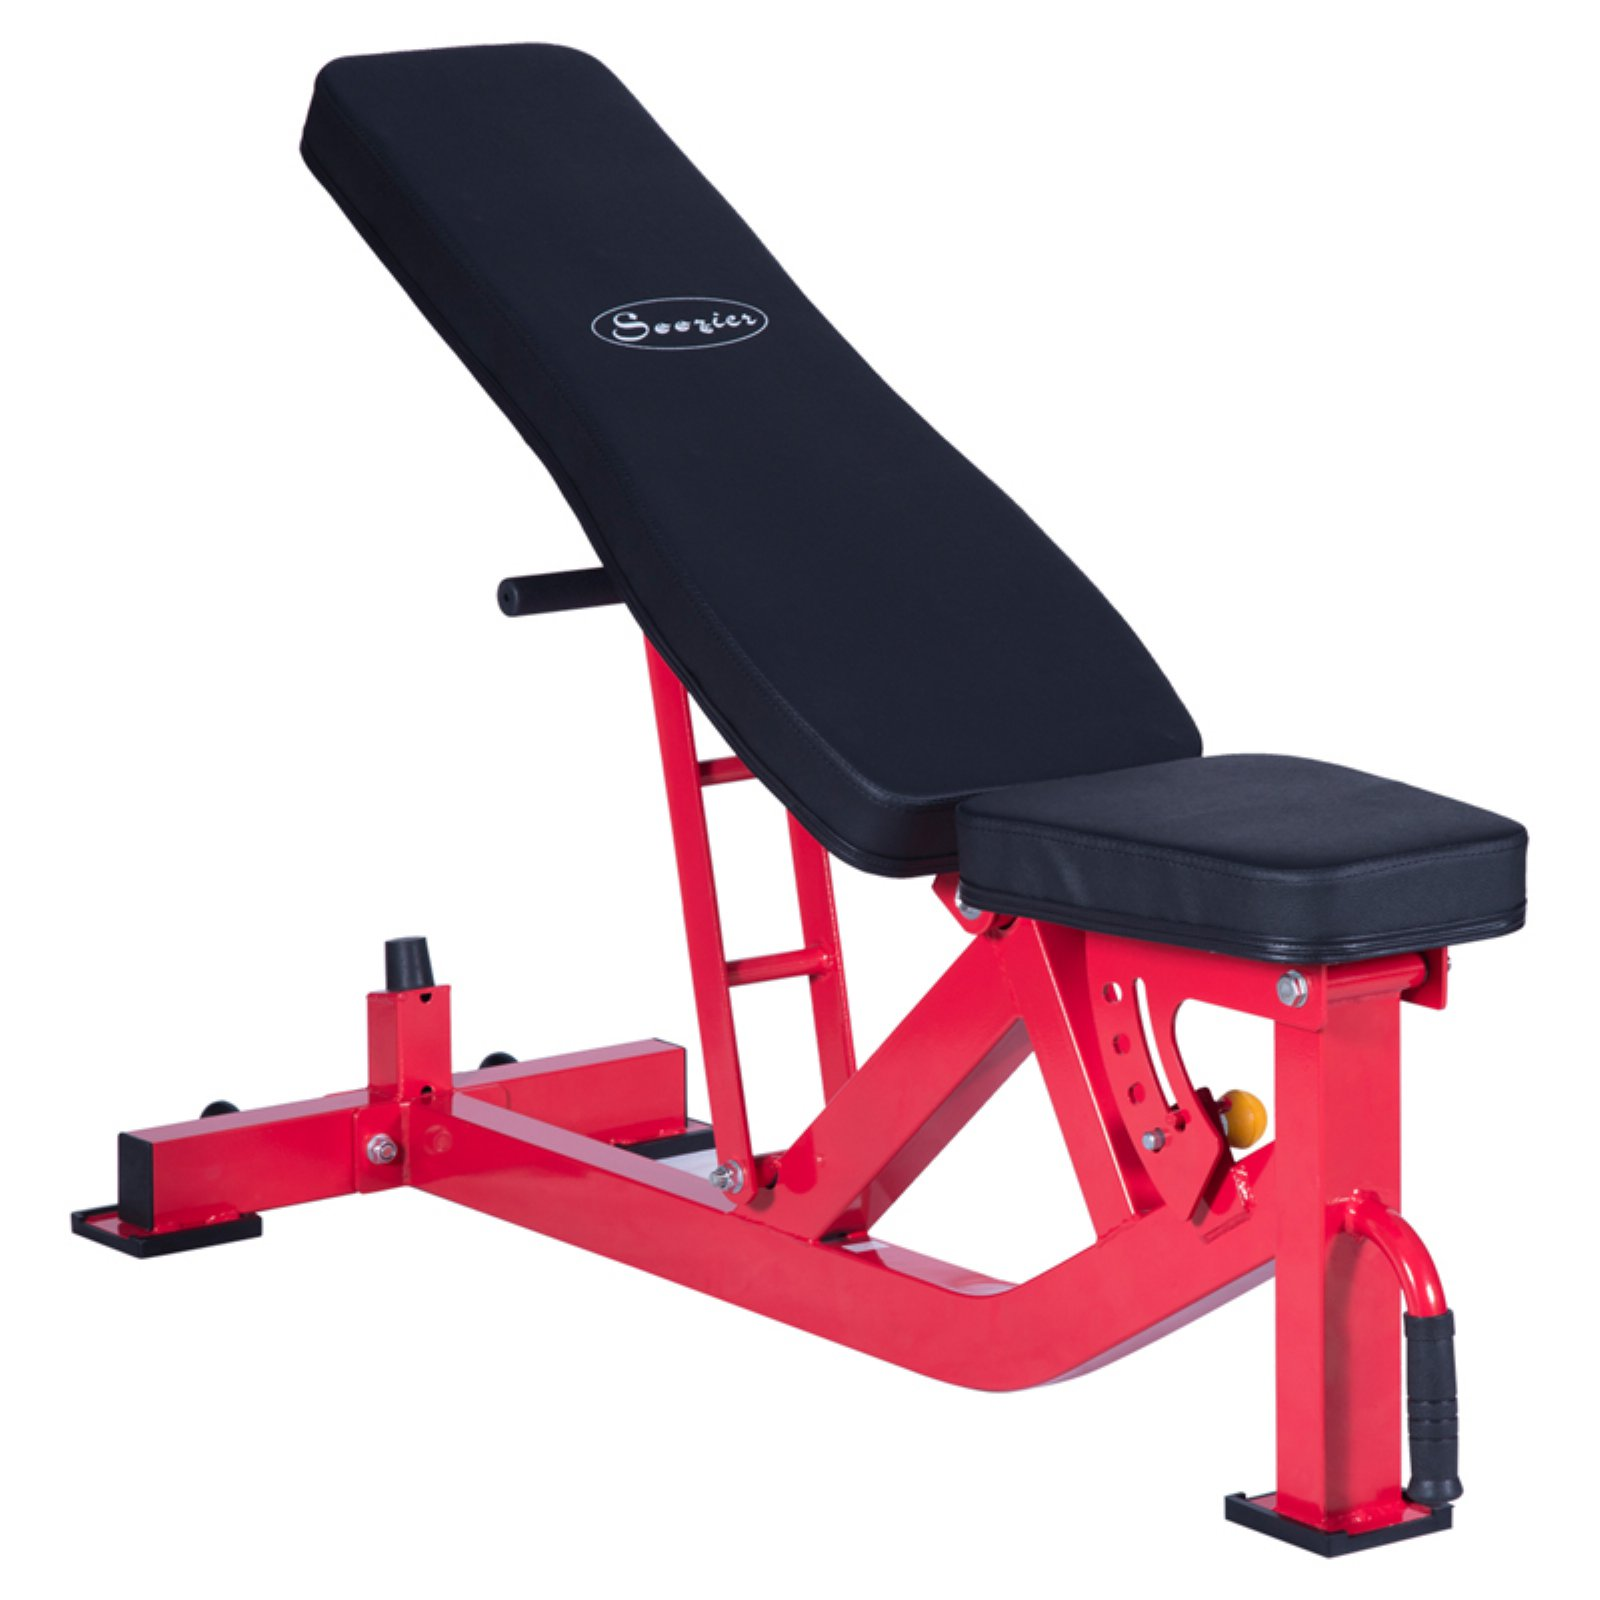 Soozier 10 Position Adjustable Weight Bench